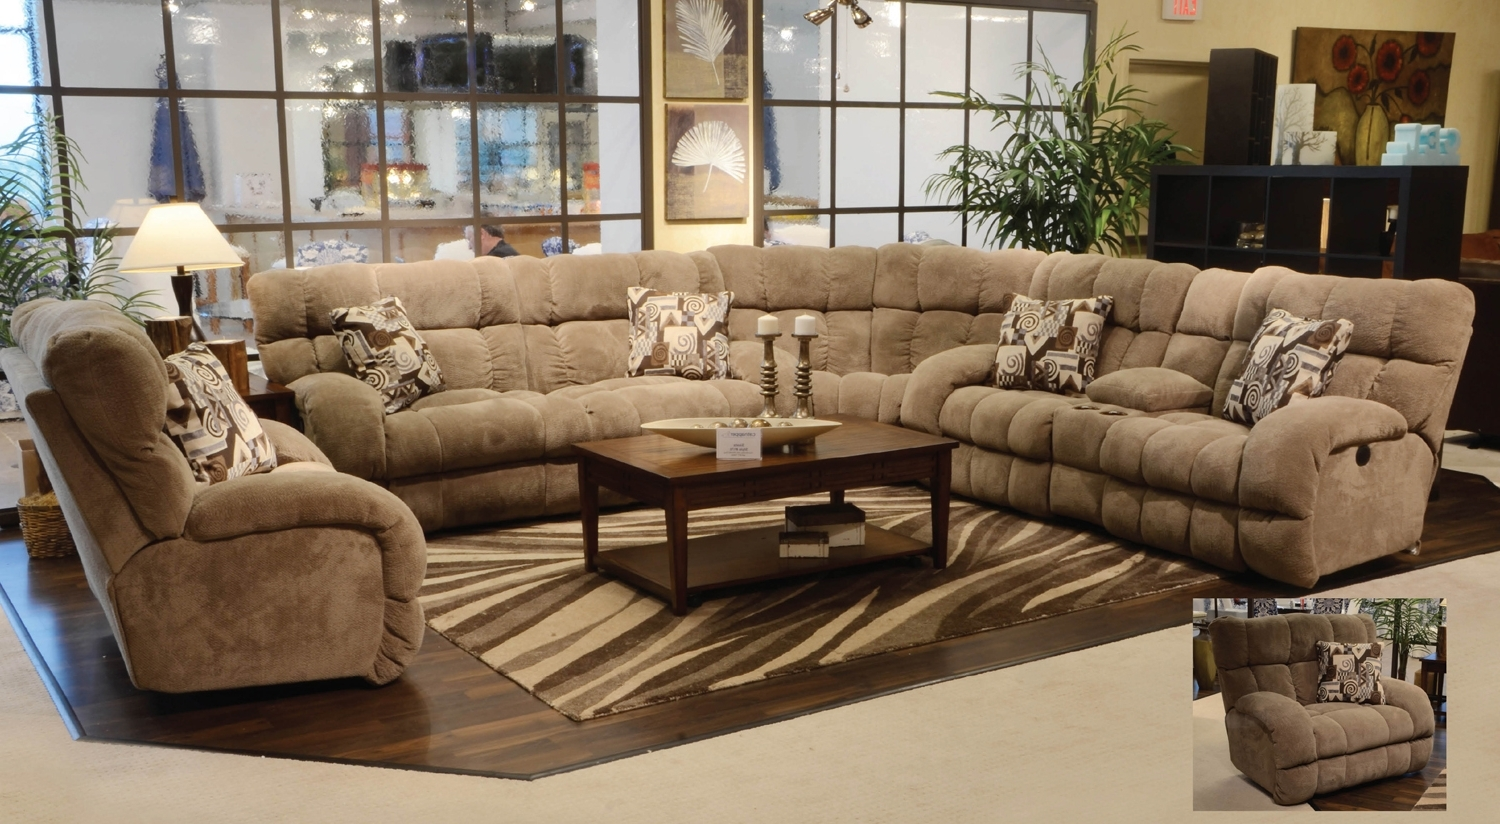 Sofa ~ Wonderful Oversized Sectionals Sofa Excellent Best Large Intended For Famous Oversized Sectionals With Chaise (View 11 of 15)